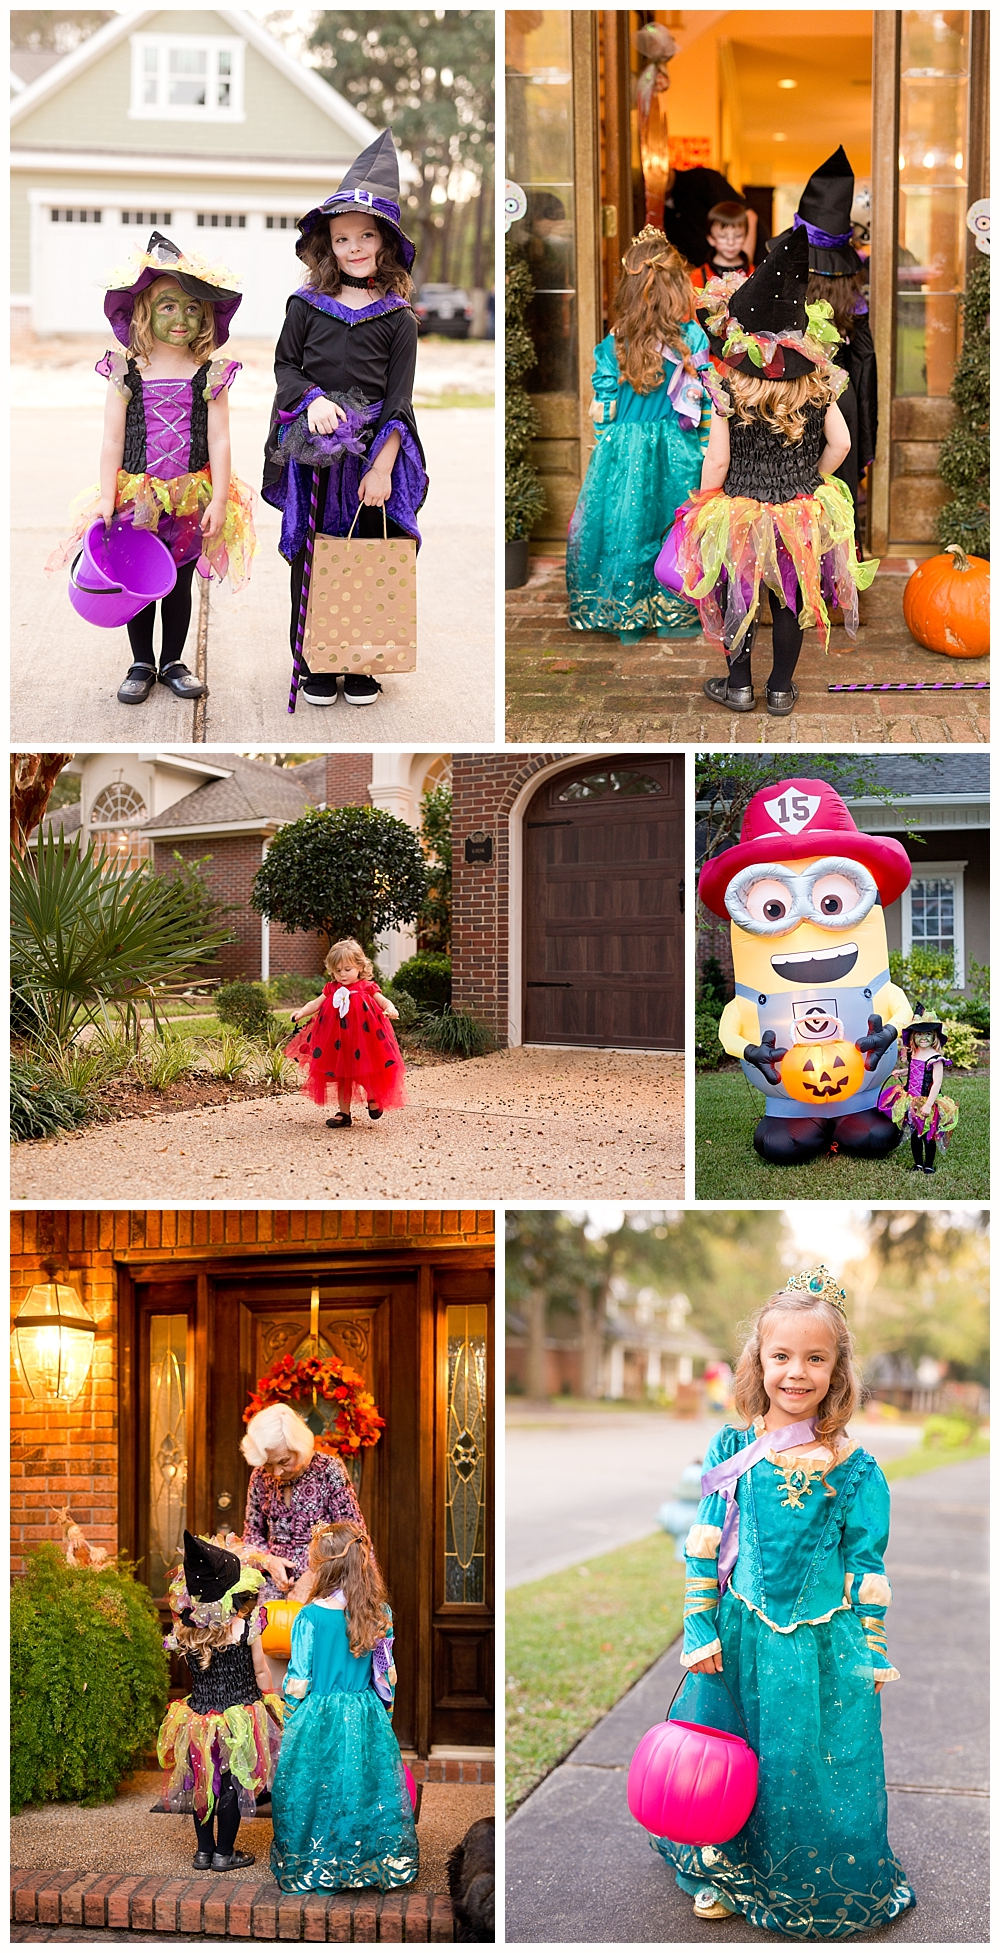 young children trick-or-treating in Bienville Place, Ocean Springs, Mississippi